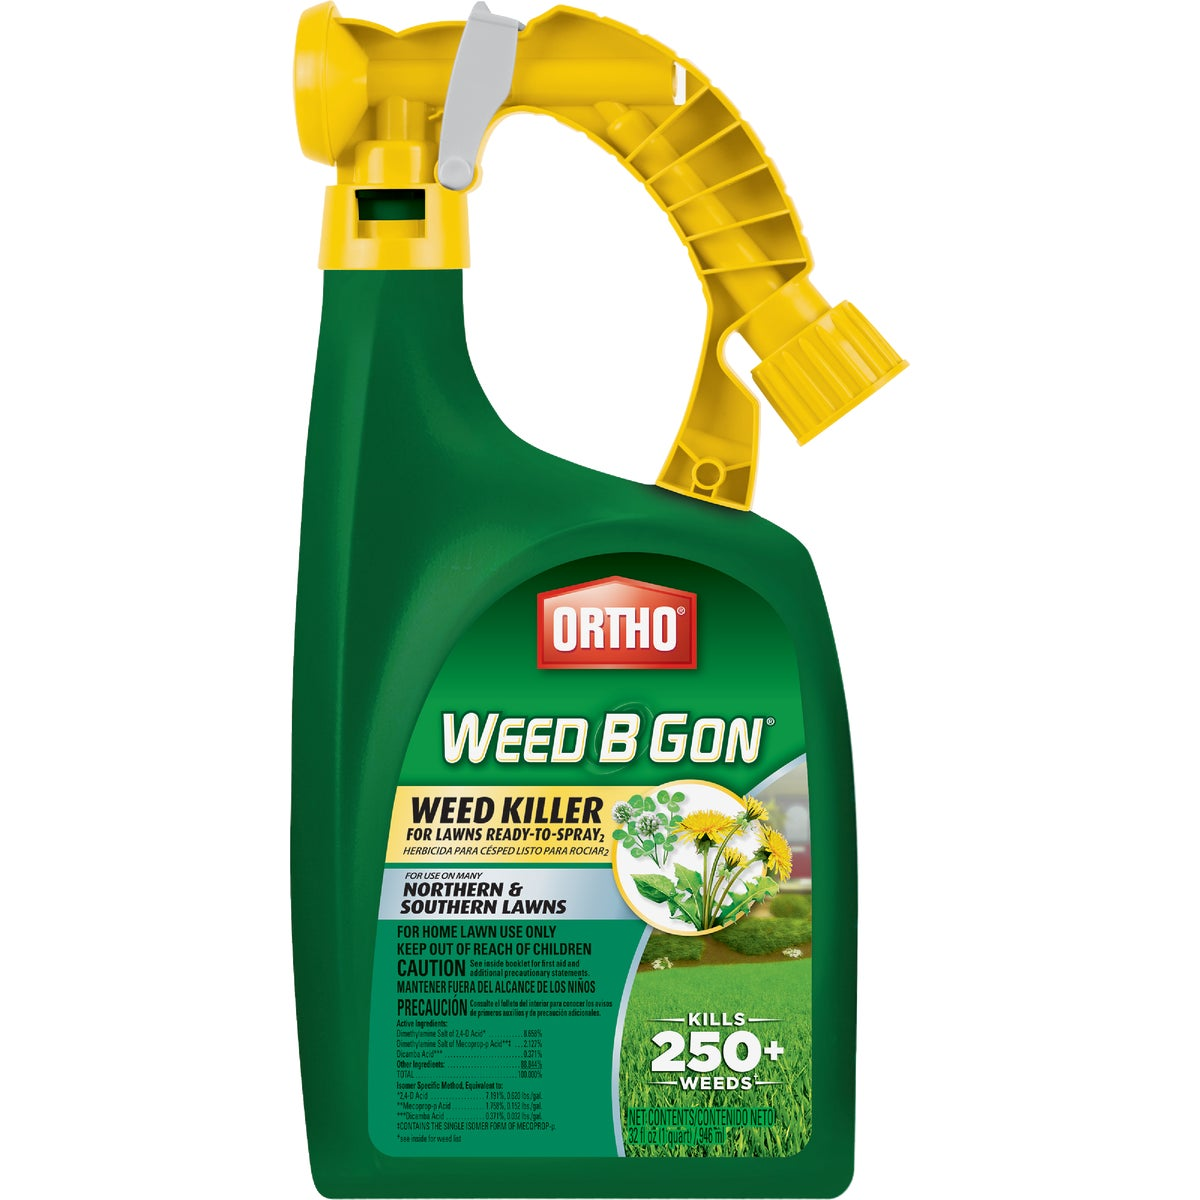 32OZ RTS WEED B GON - 0406010 by Scotts Company